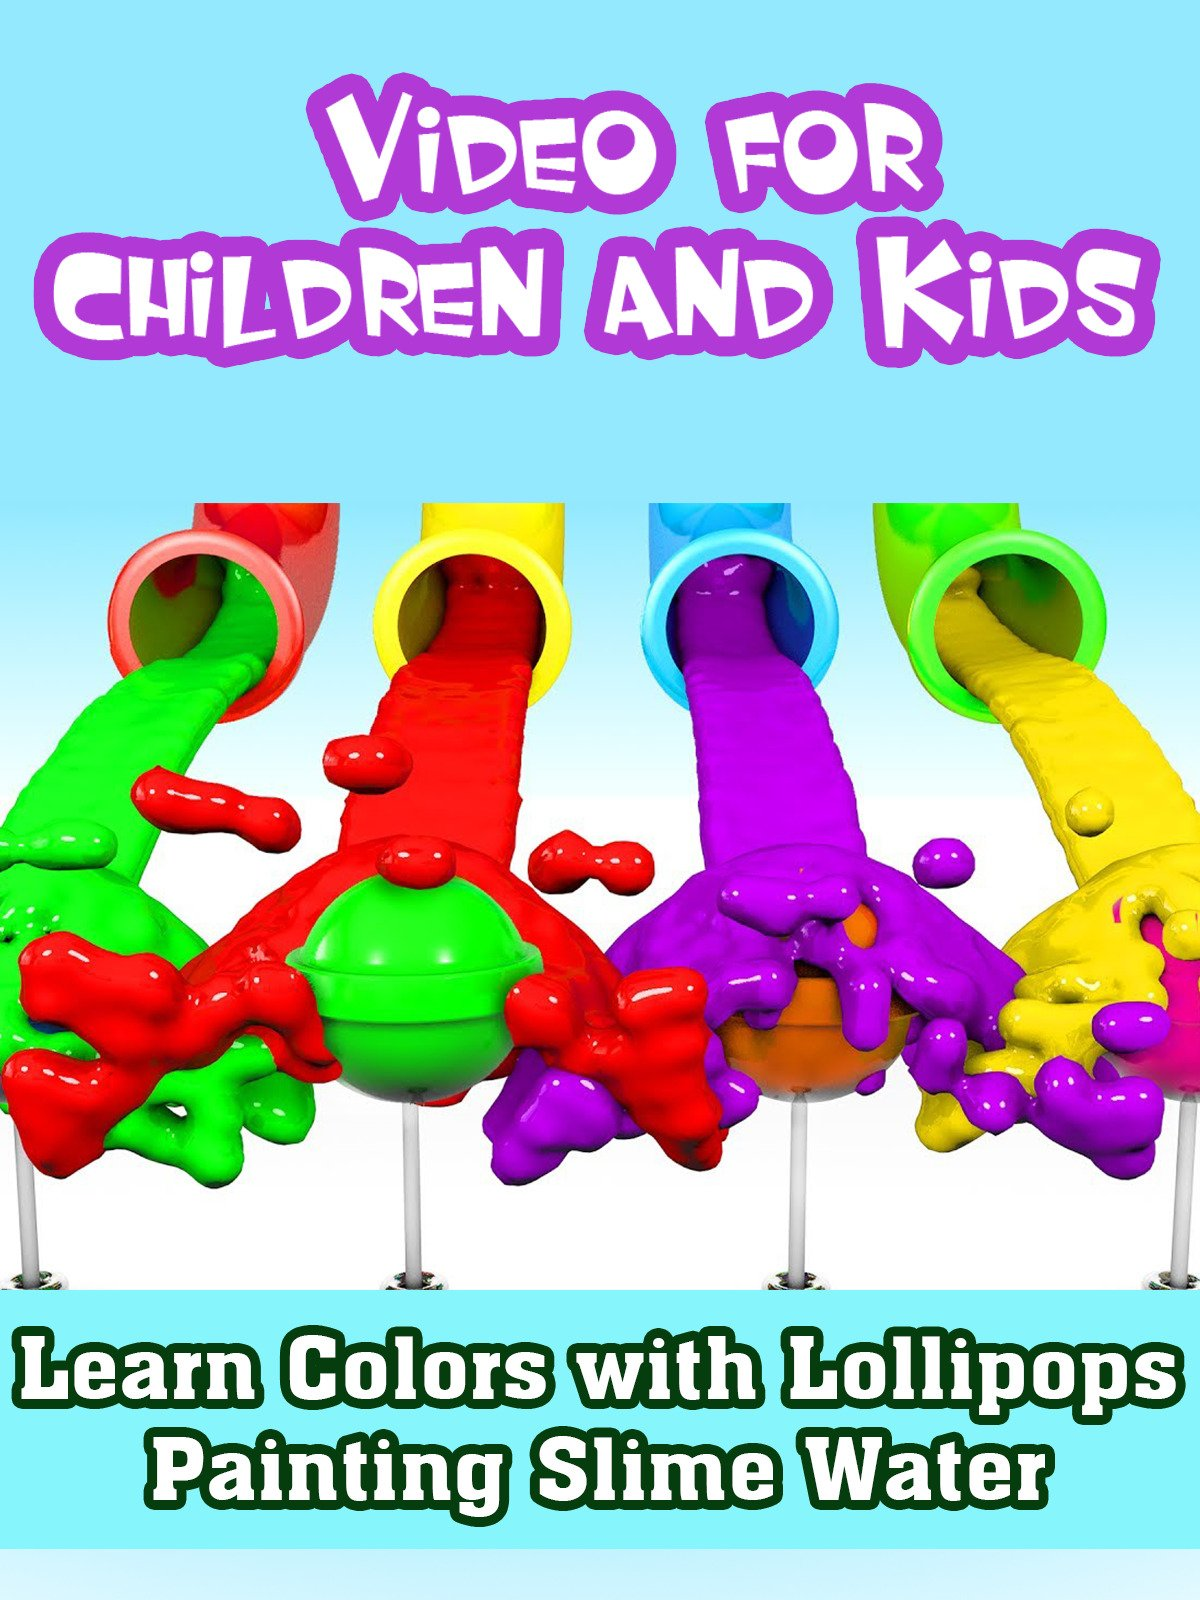 Learn Colors with Lollipops Painting Slime Water for Baby Children and Kids